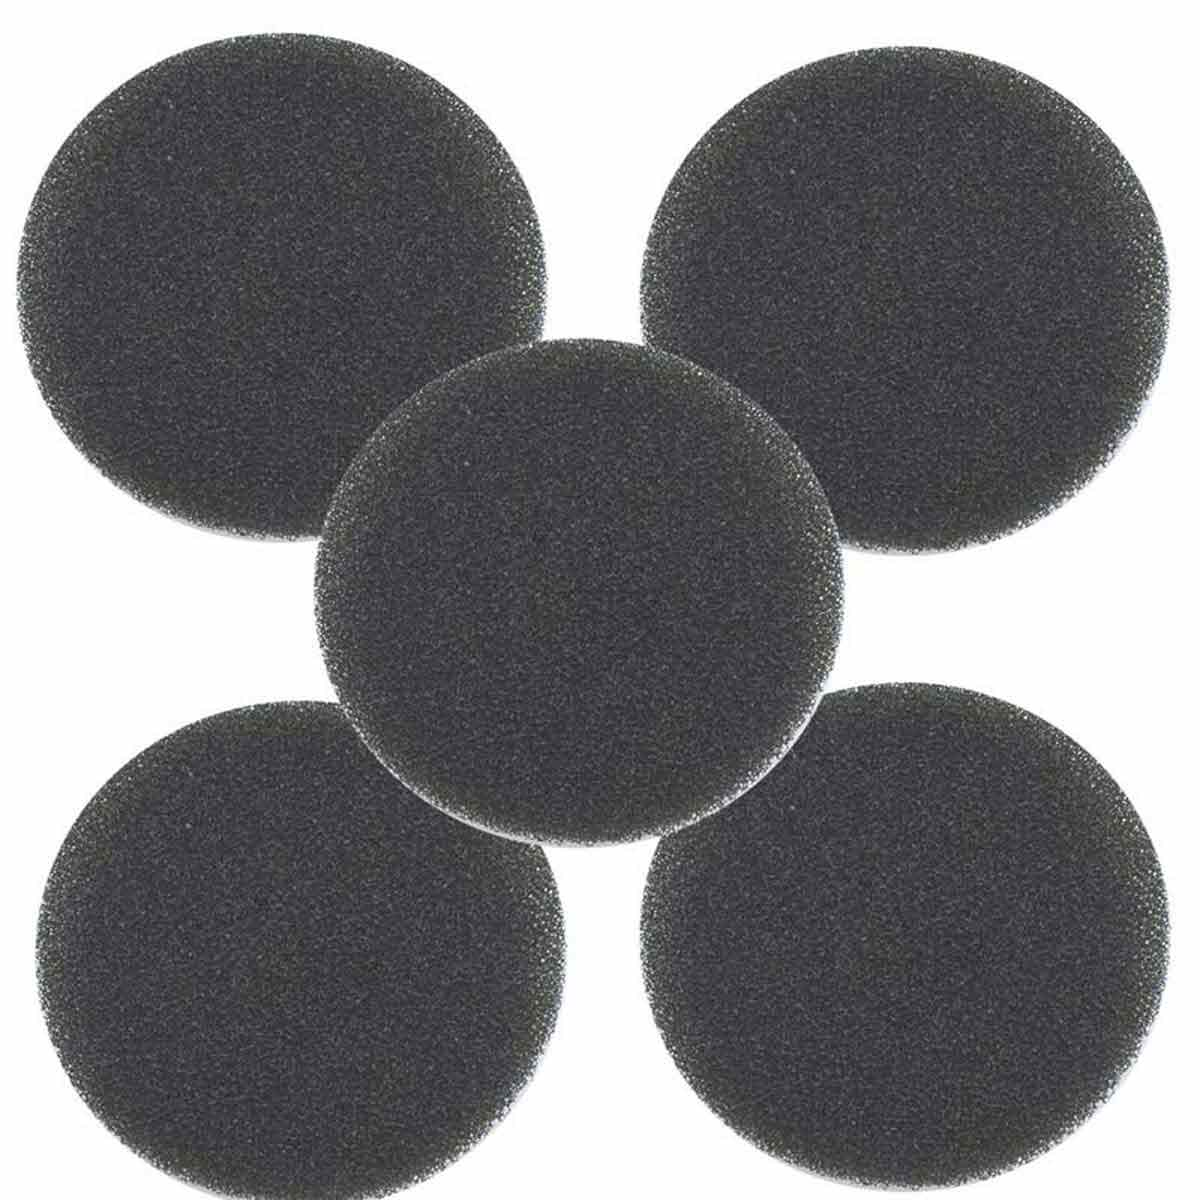 Filter Foam Replacement 5 Pack Power Dryer Filter for B-Air Grooming Dryers at Ryan's Pet Supplies